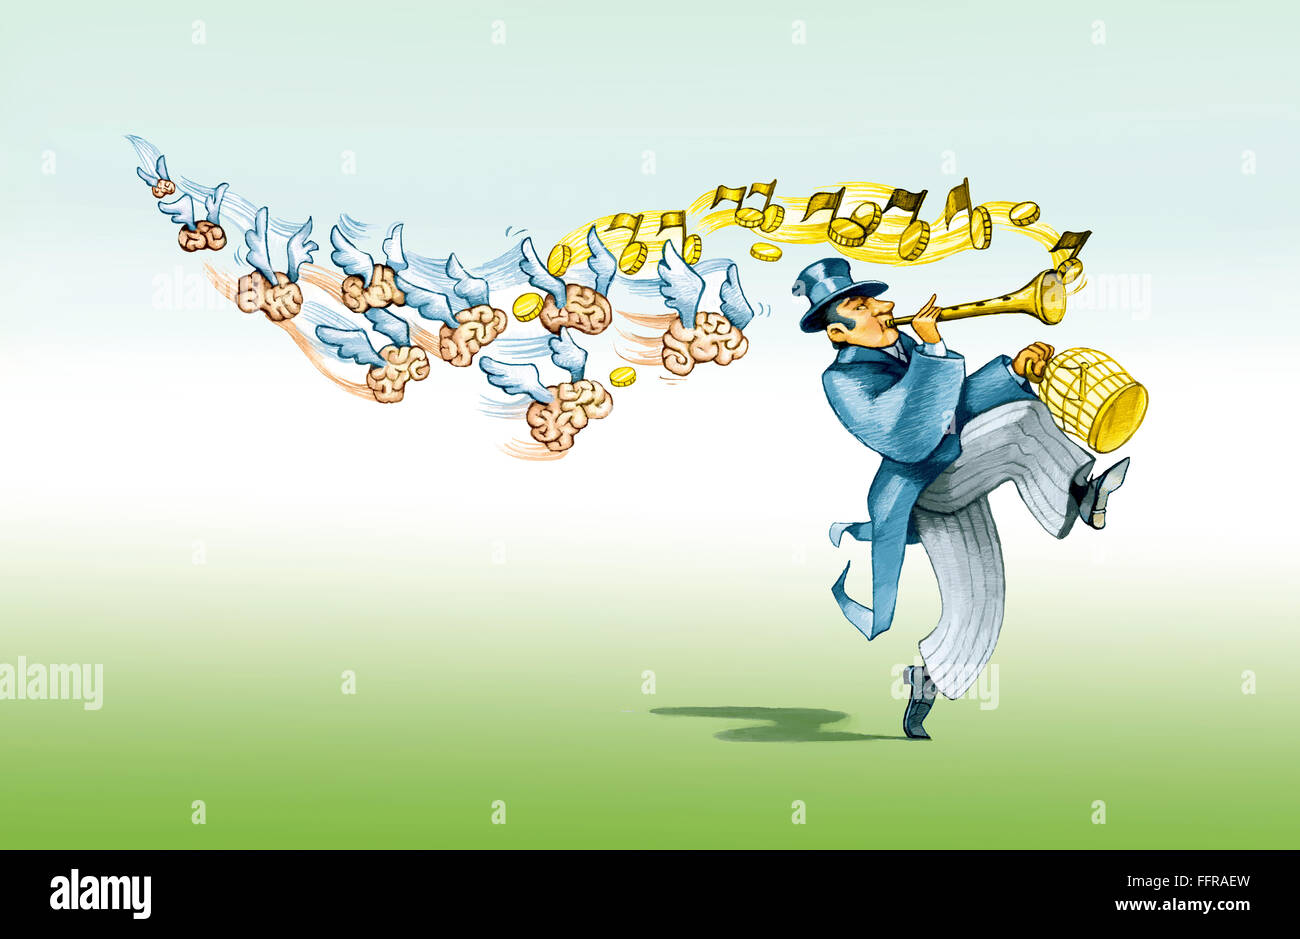 a financier like the Pied Piper brings with him to imprison the minds playn a money song - Stock Image